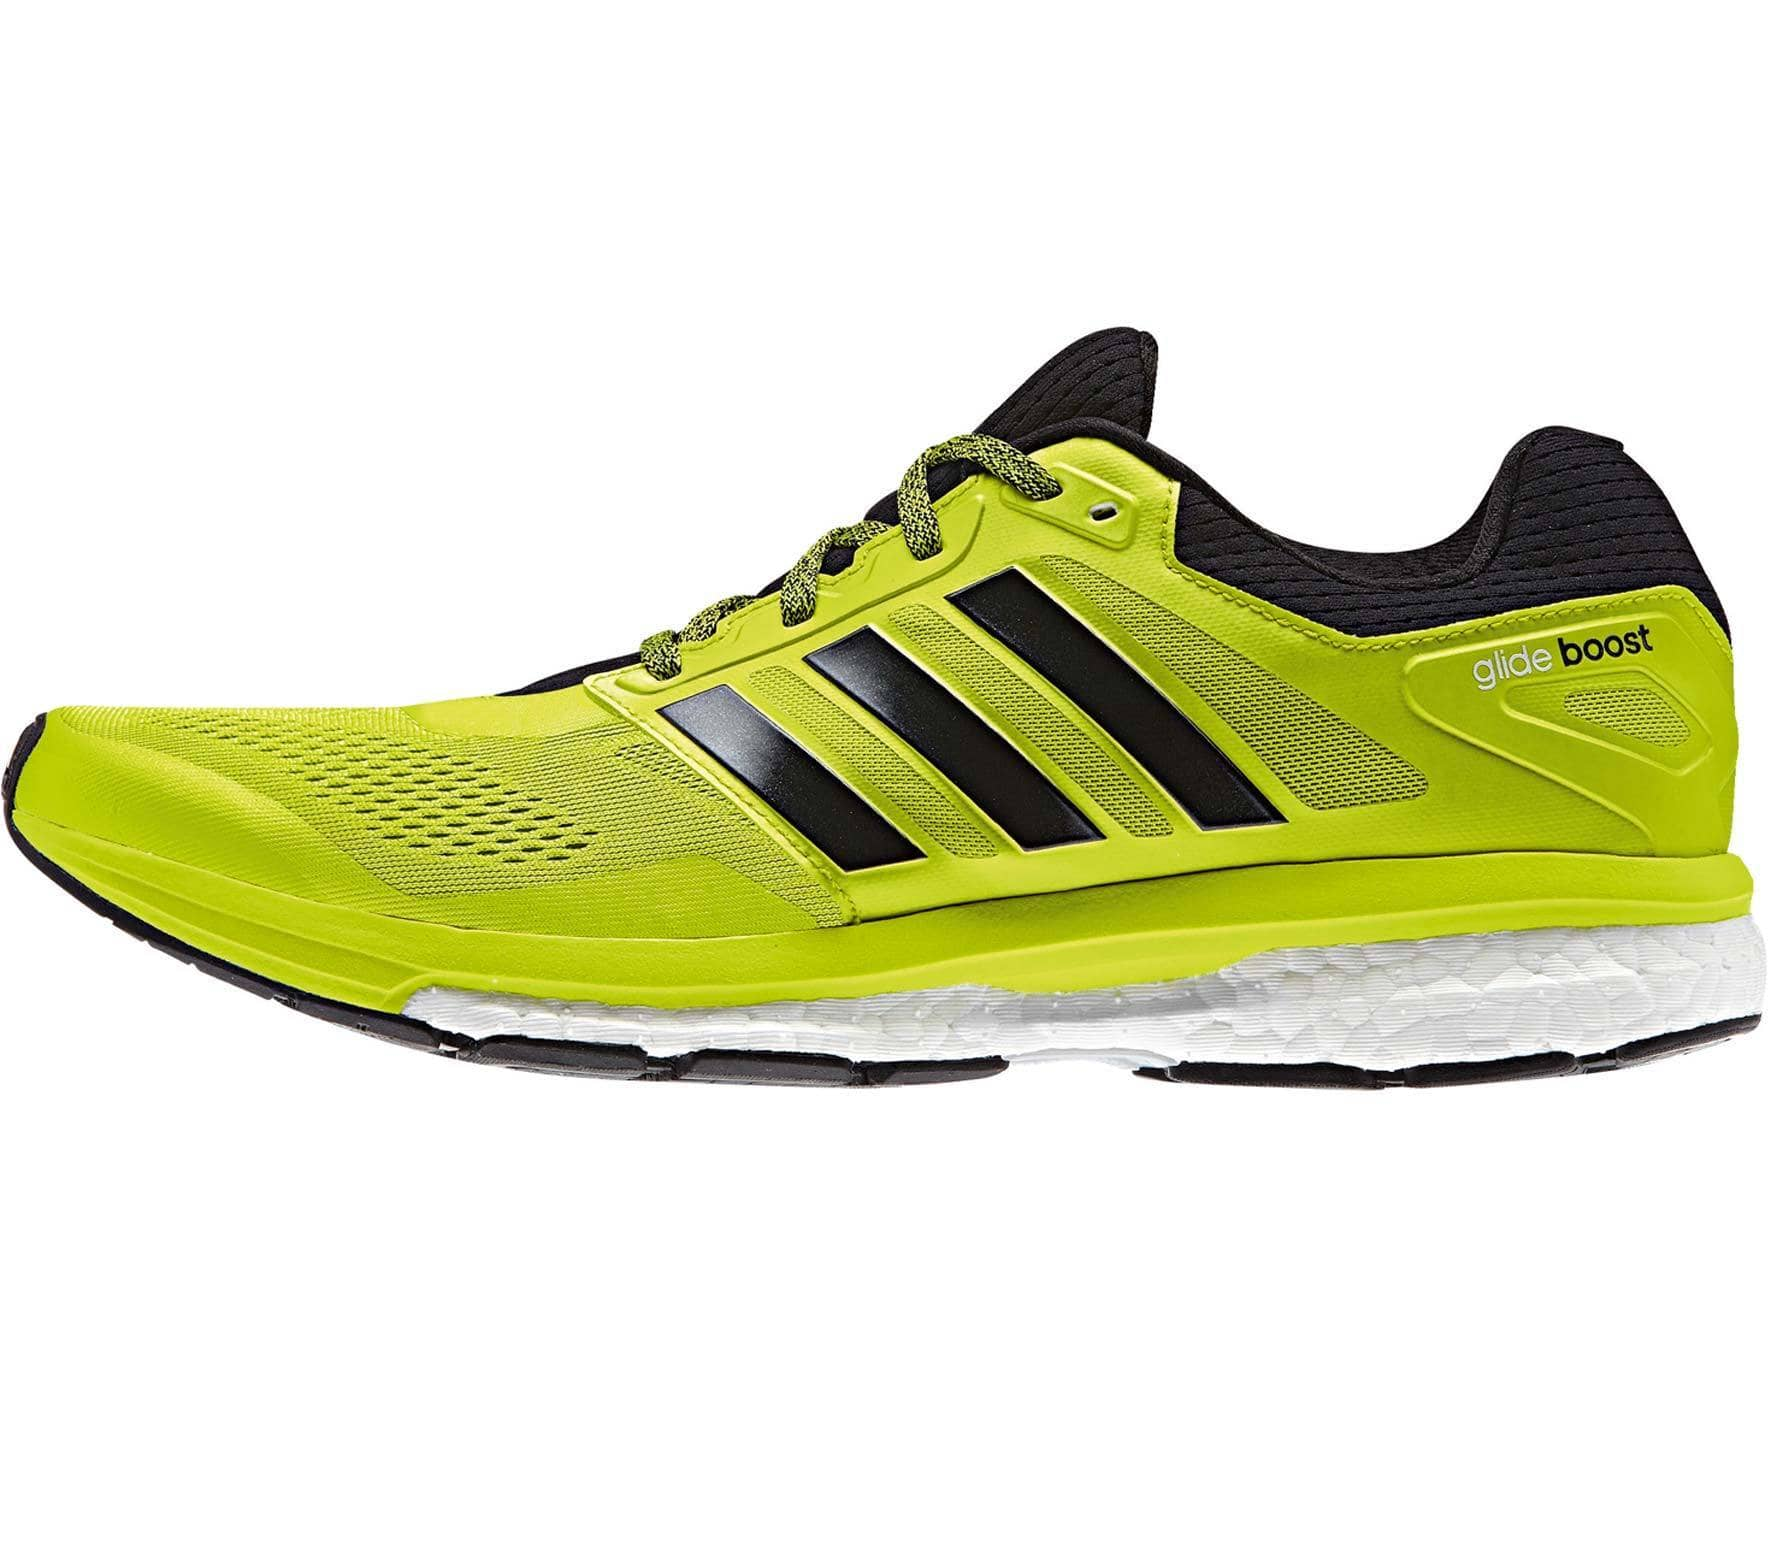 Adidas Men's Supernova Glide Boost 7 Running Shoe